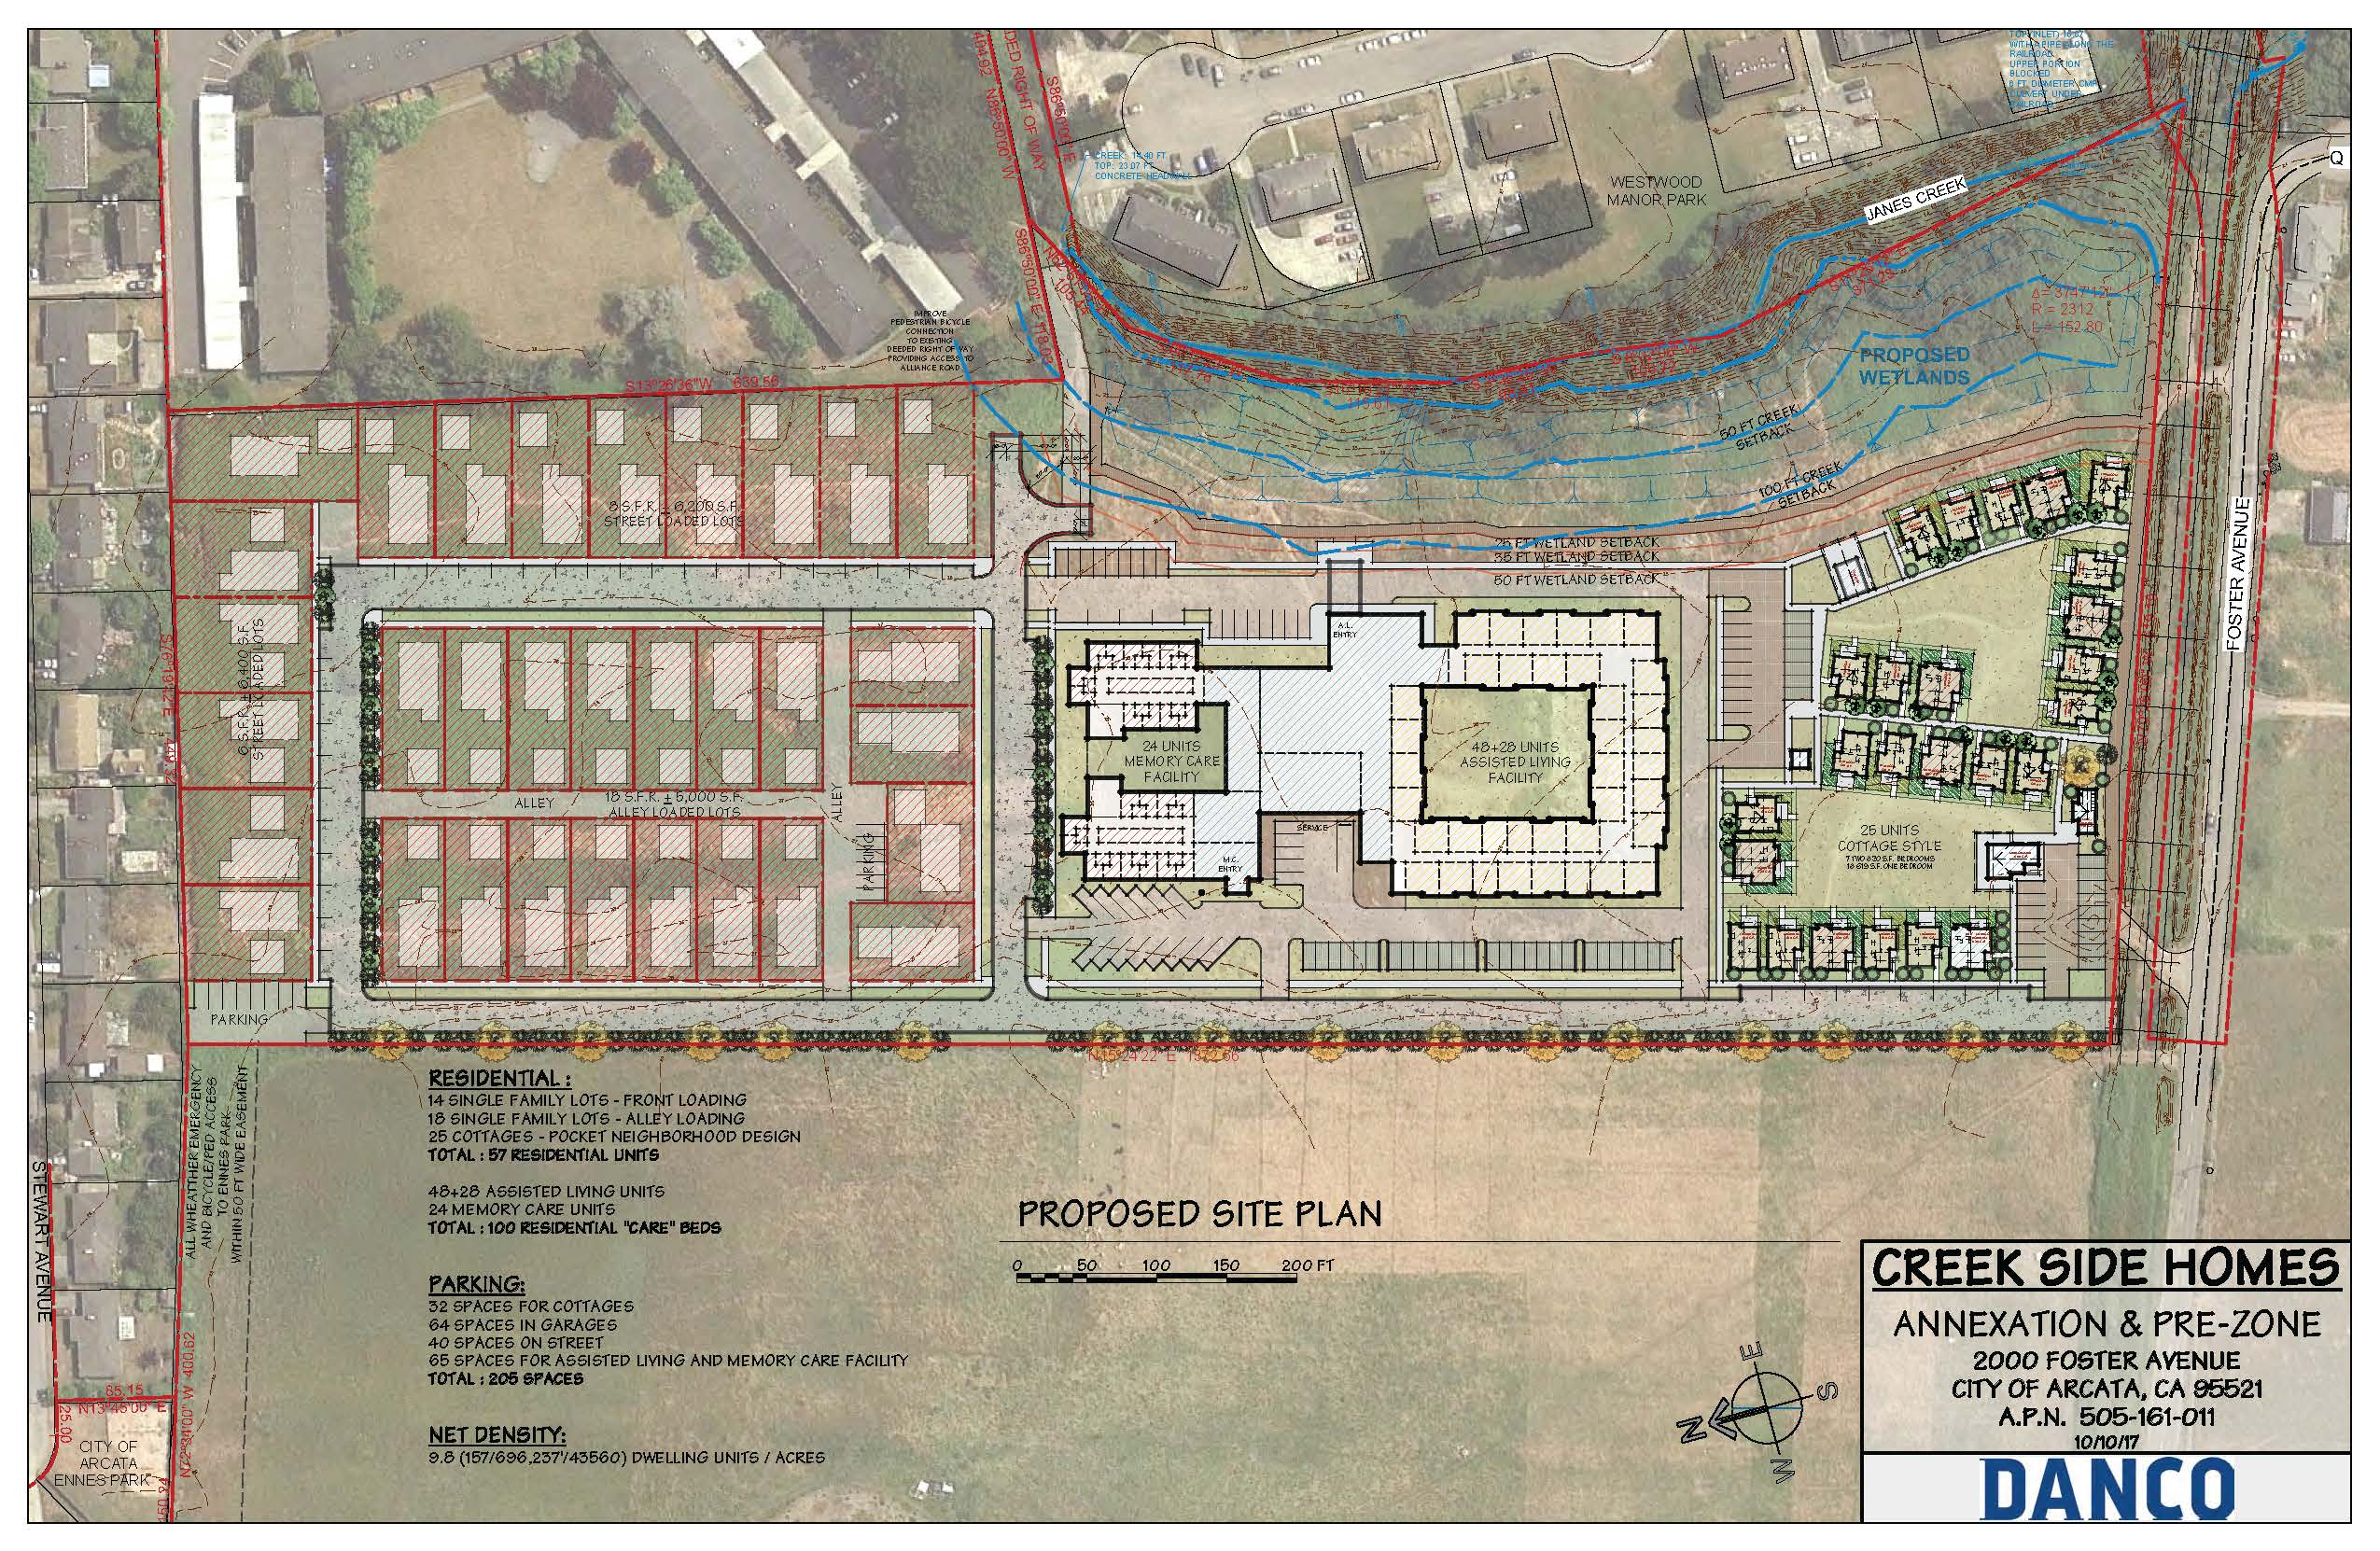 Revised Site Plan for Creek Side Mixed Occupancy Residential Annexation Project